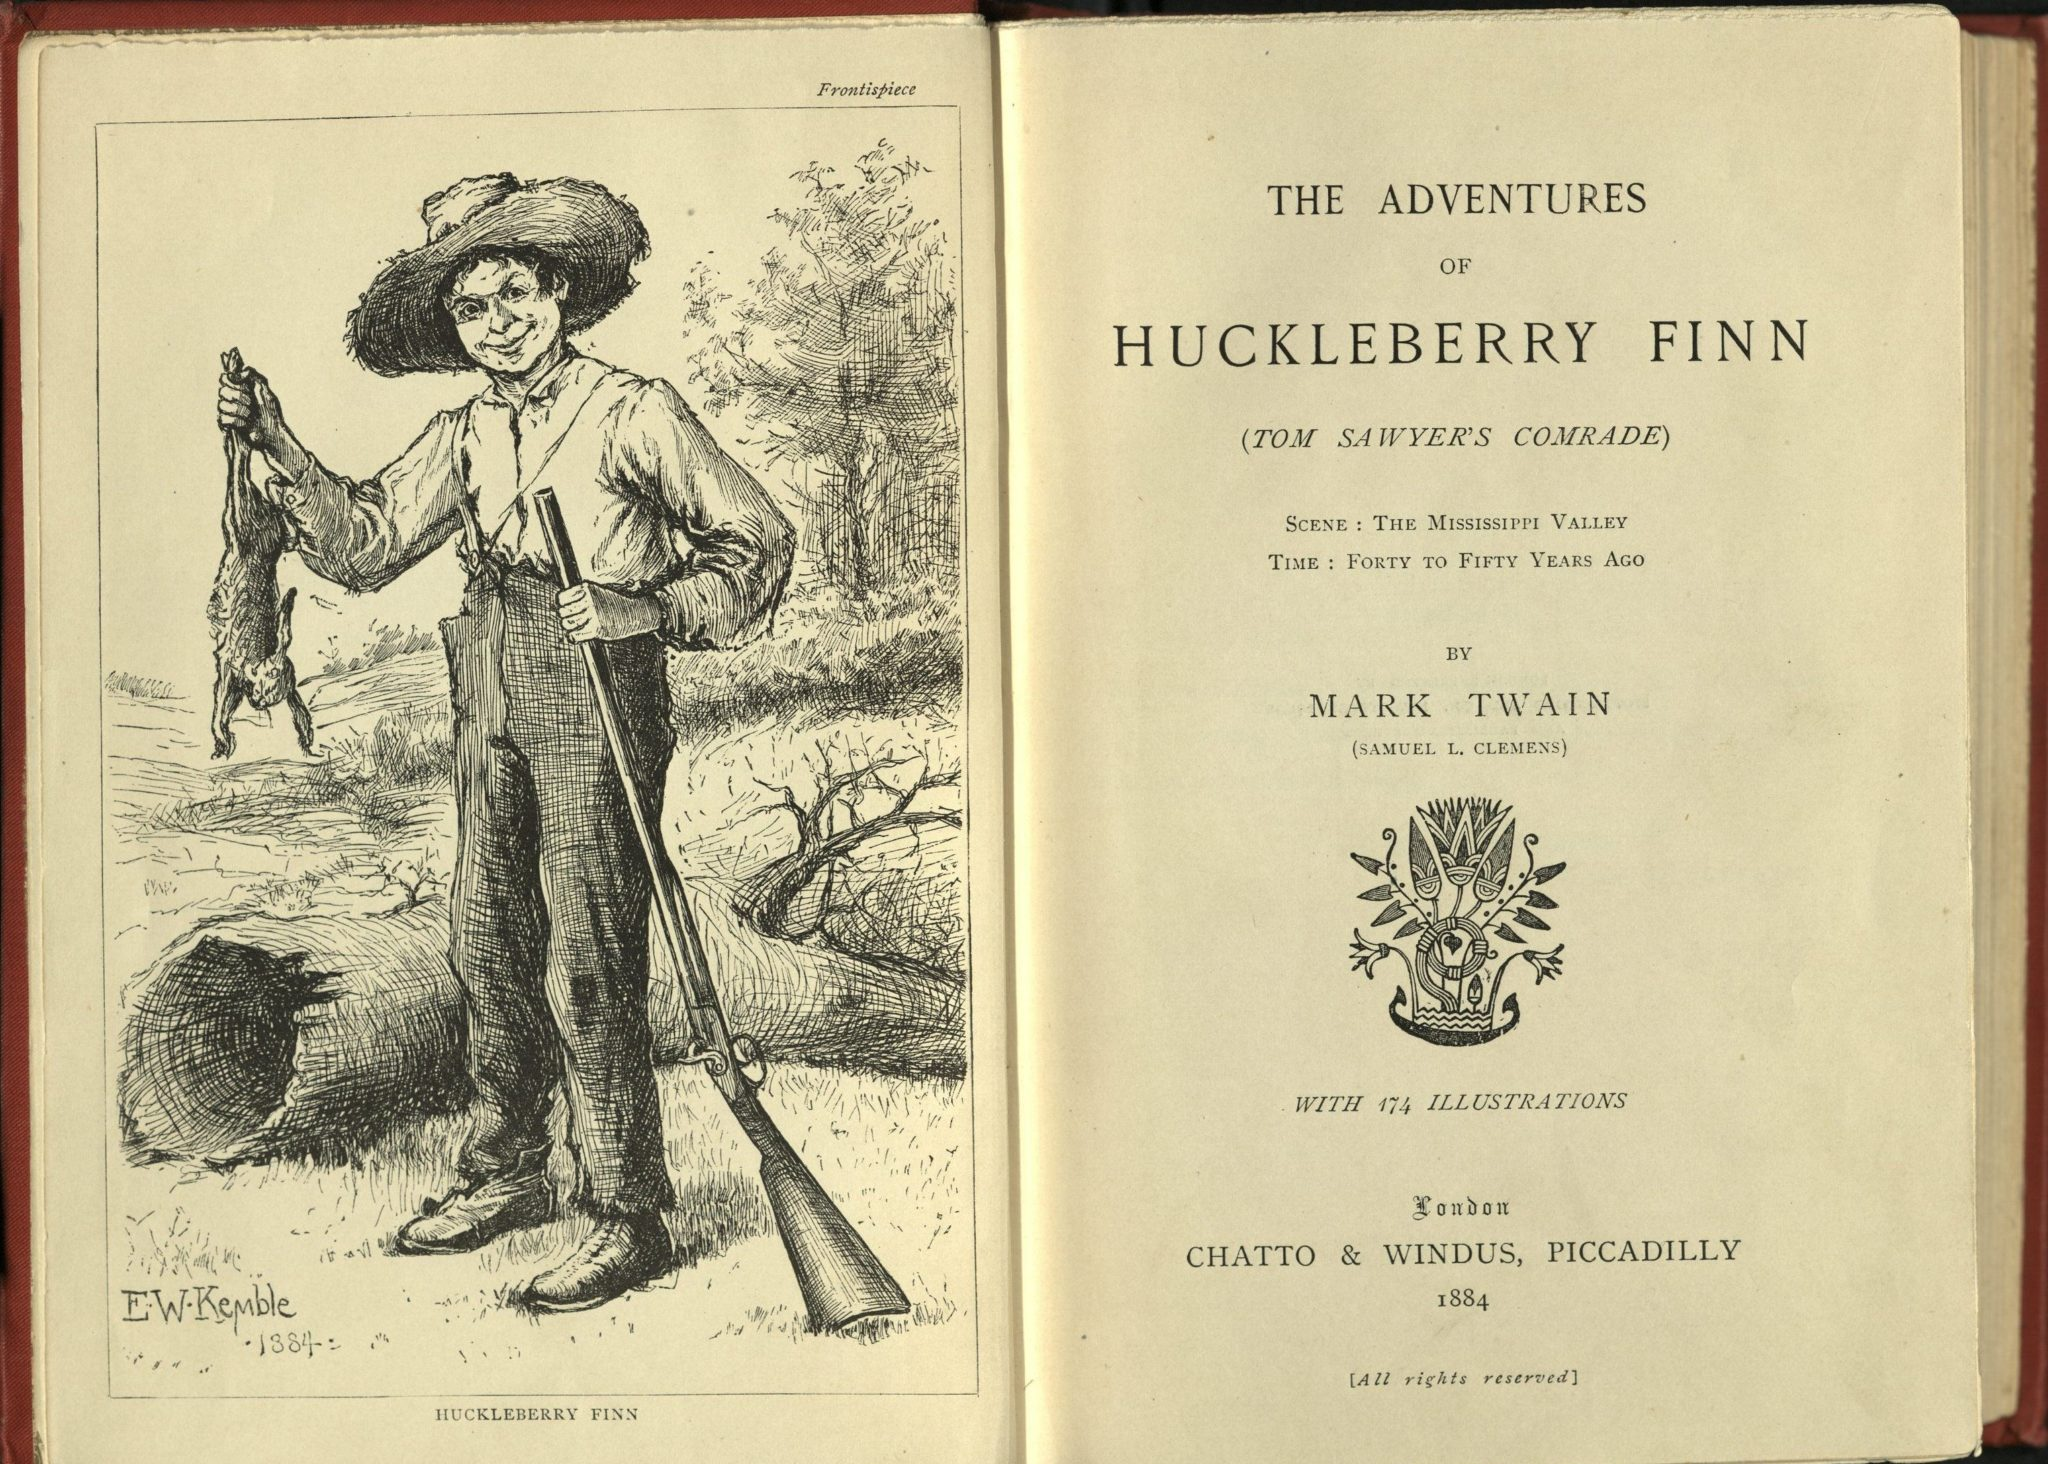 ernest hemingway on huckleberry finn Hemingway, ernest — 'all modern american literature comes from one book by mark twain called huckleberry finn american writing comes from that there wa.